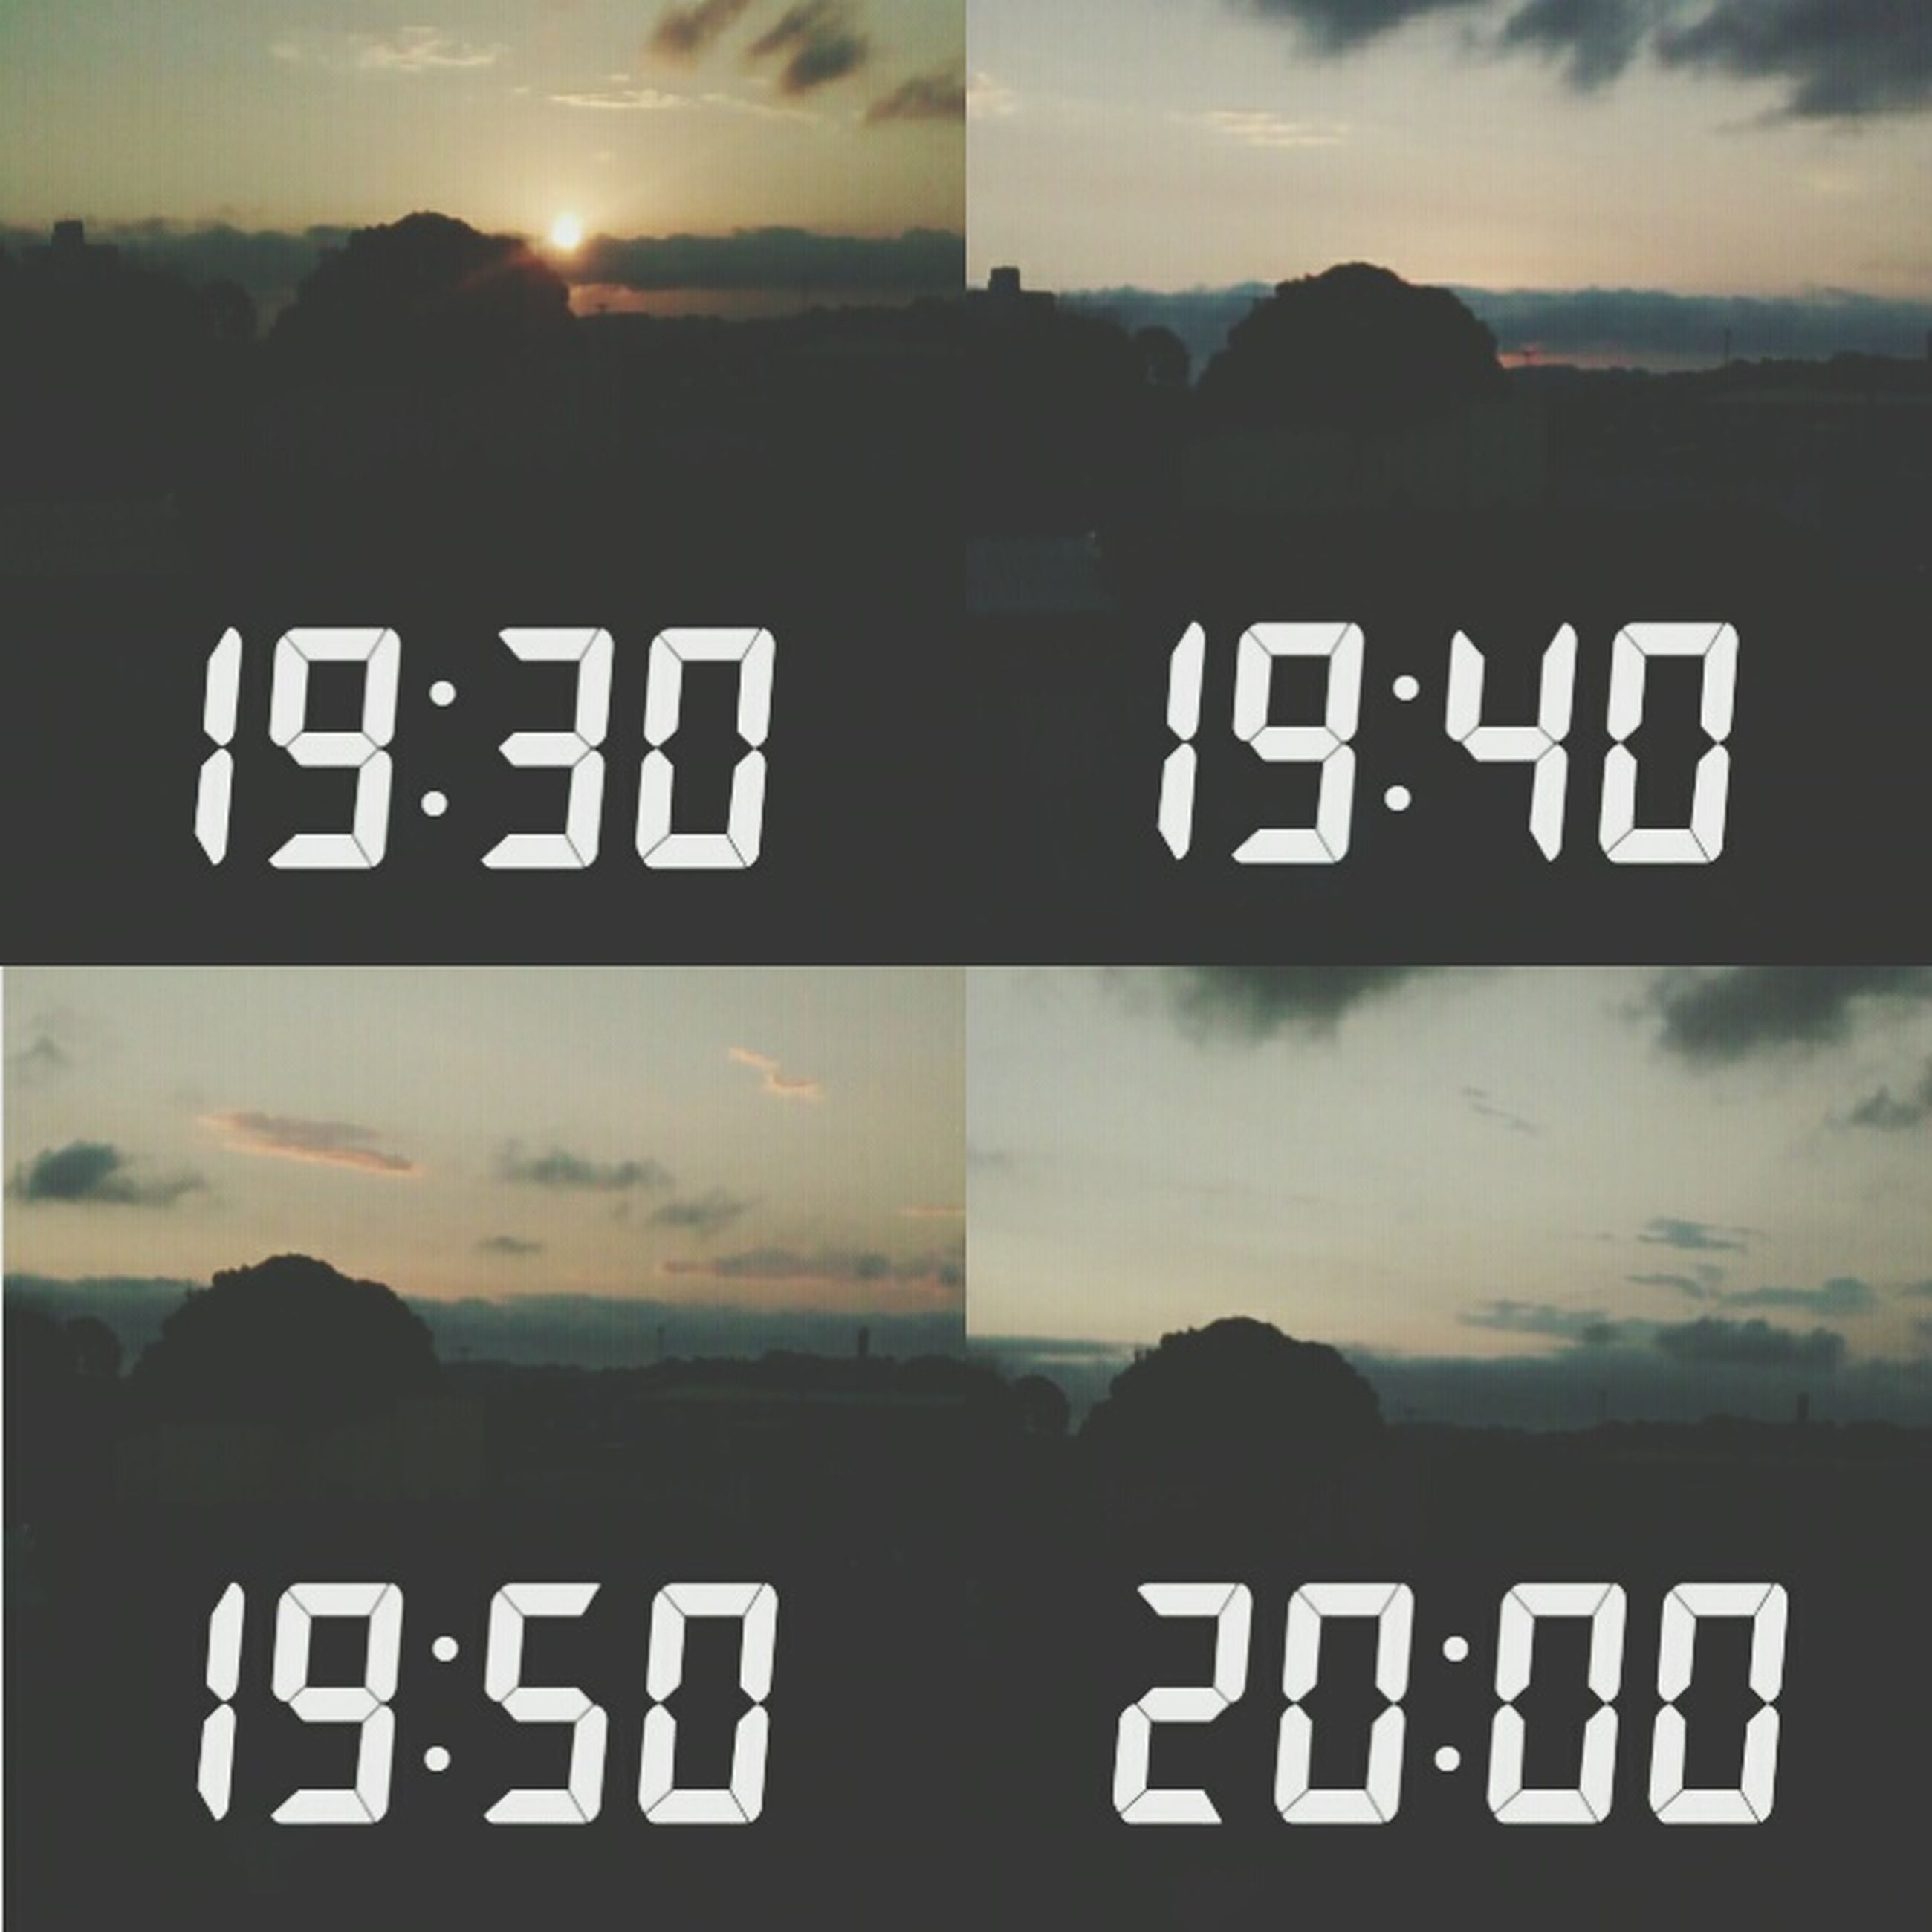 text, western script, communication, capital letter, sign, information sign, information, guidance, non-western script, warning sign, number, directional sign, arrow symbol, sunset, road sign, sky, signboard, direction, close-up, no people